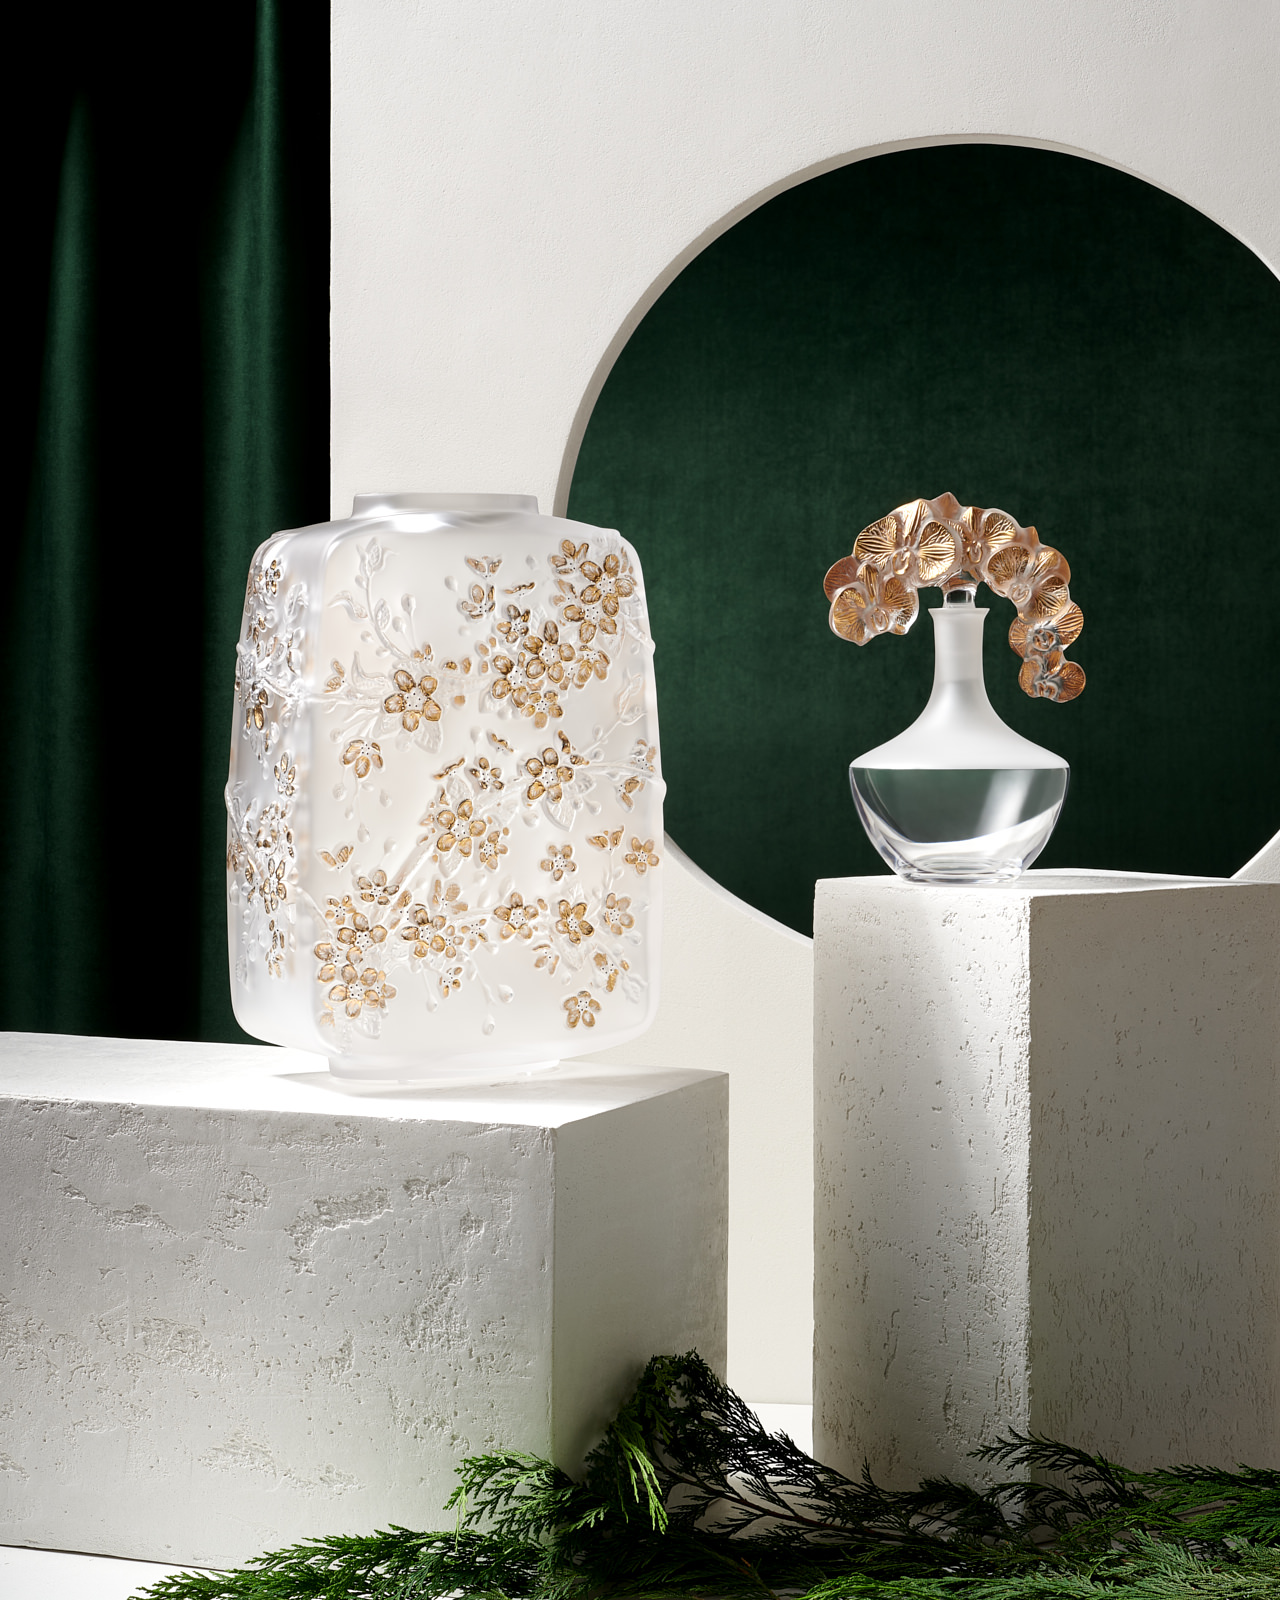 Lalique Vase Decanter For Neiman Marcus Catalog Look Book by Matthew Roharik Luxury Product Photographer Los Angeles